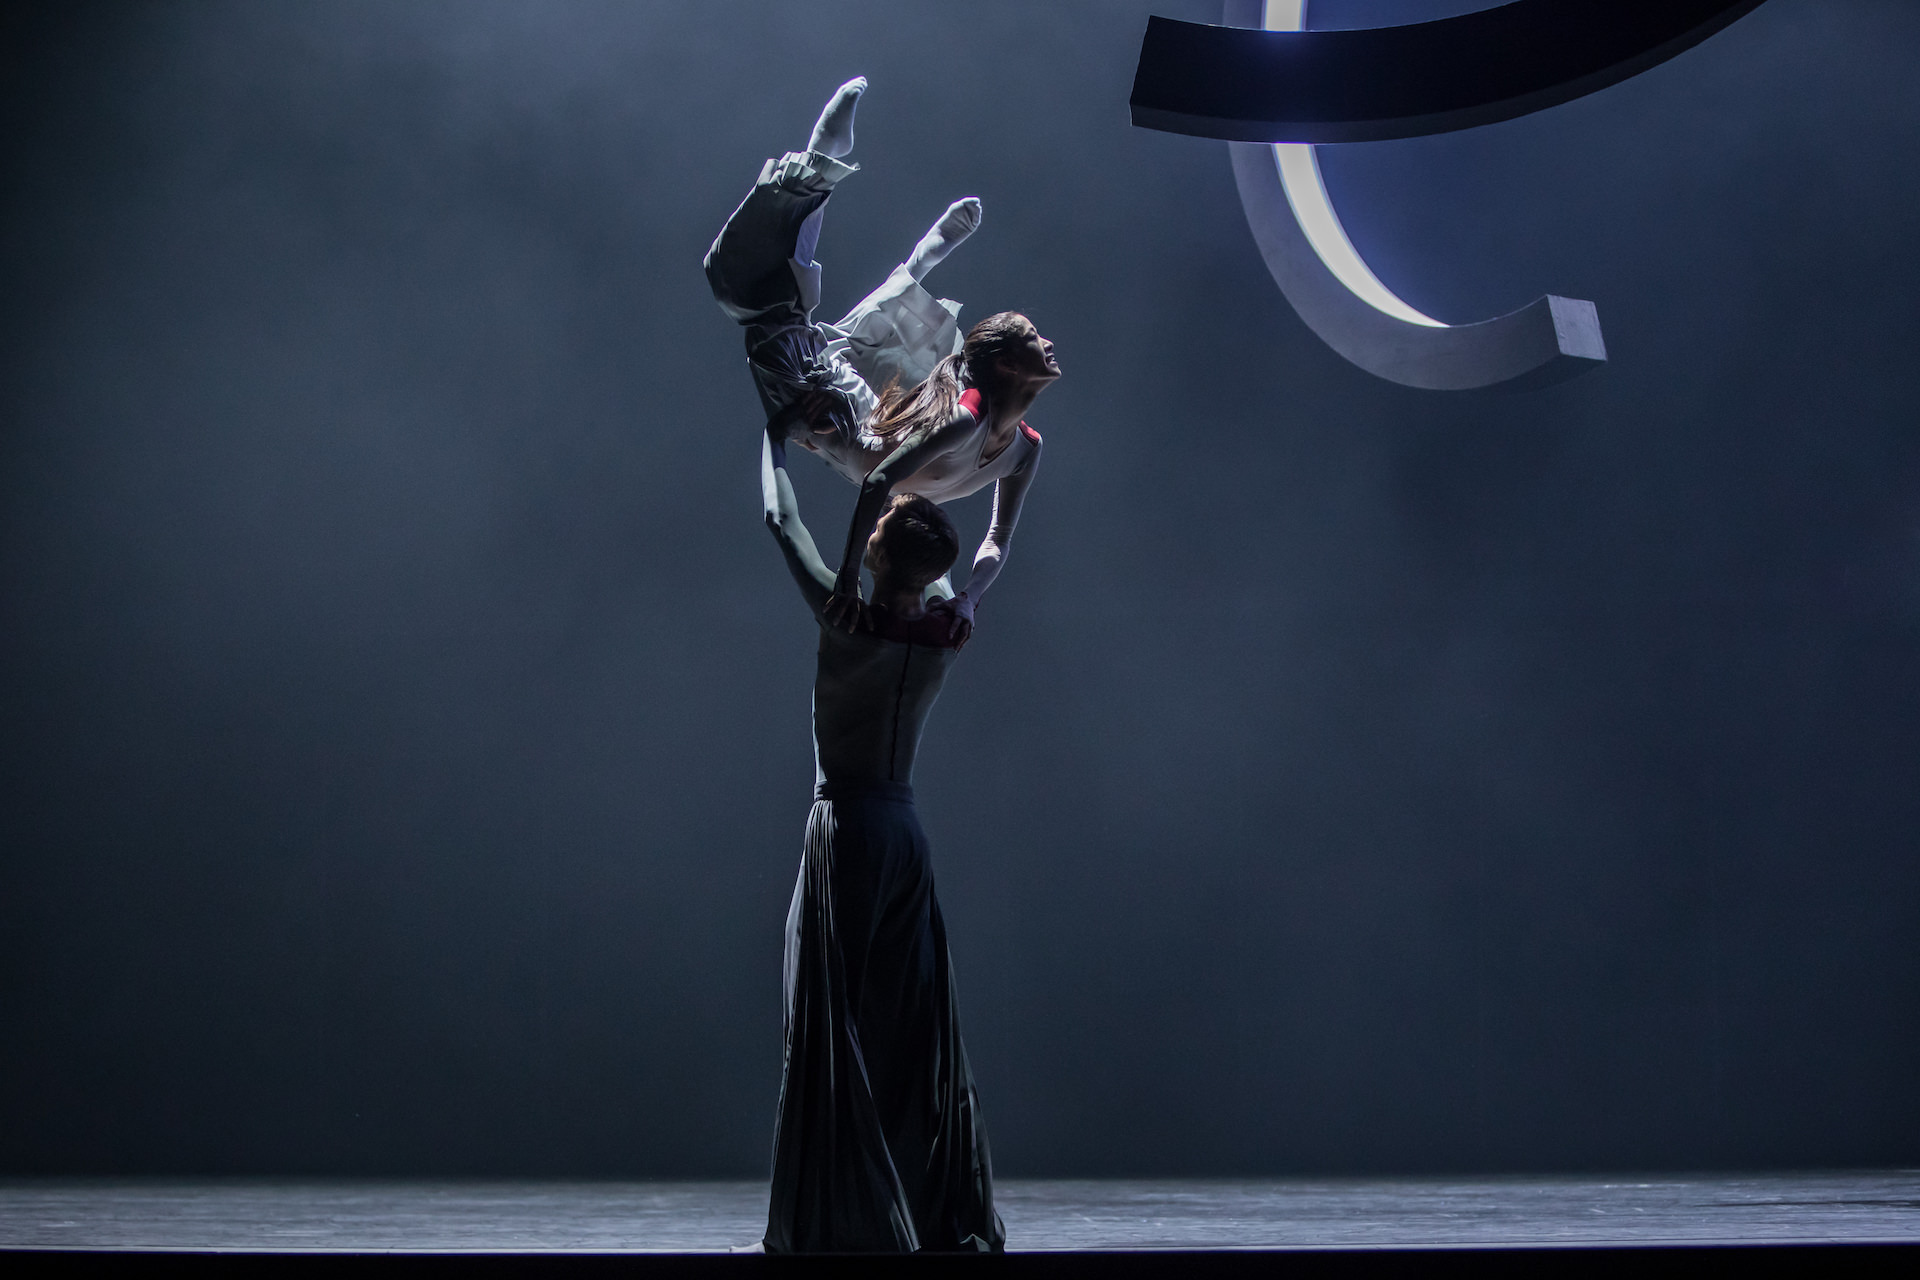 Porté. Male dancer carrying his partner through the stage in a dark grey atmosphere. Photo by Gregory Batardon.